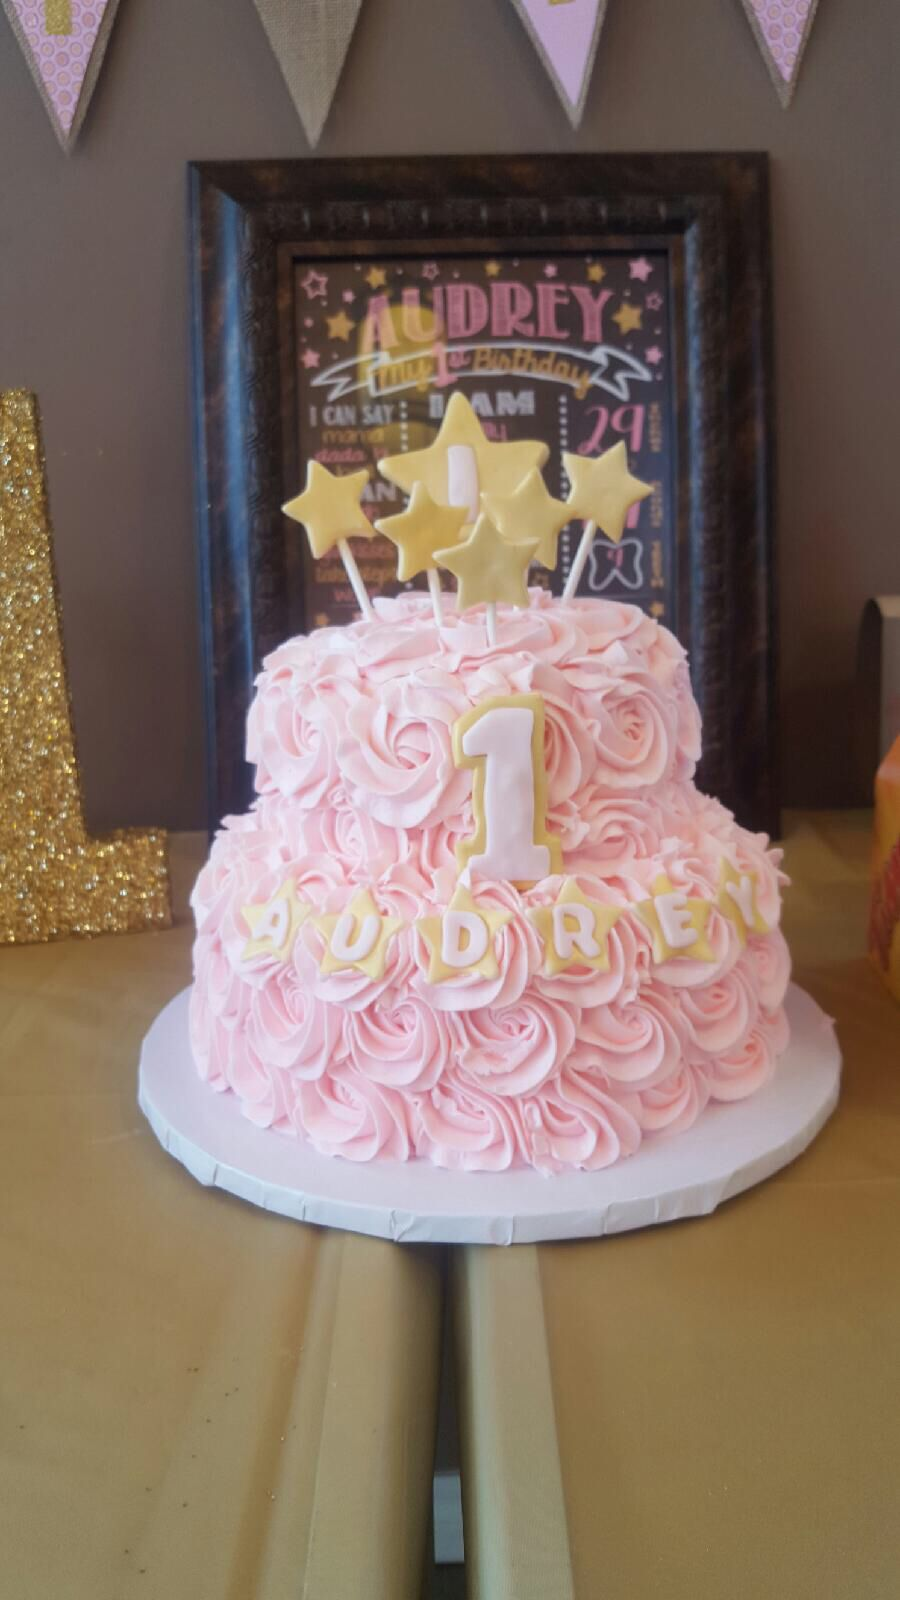 Twinkle tinkle little star cake for first birthday for Decorating 1st birthday cake